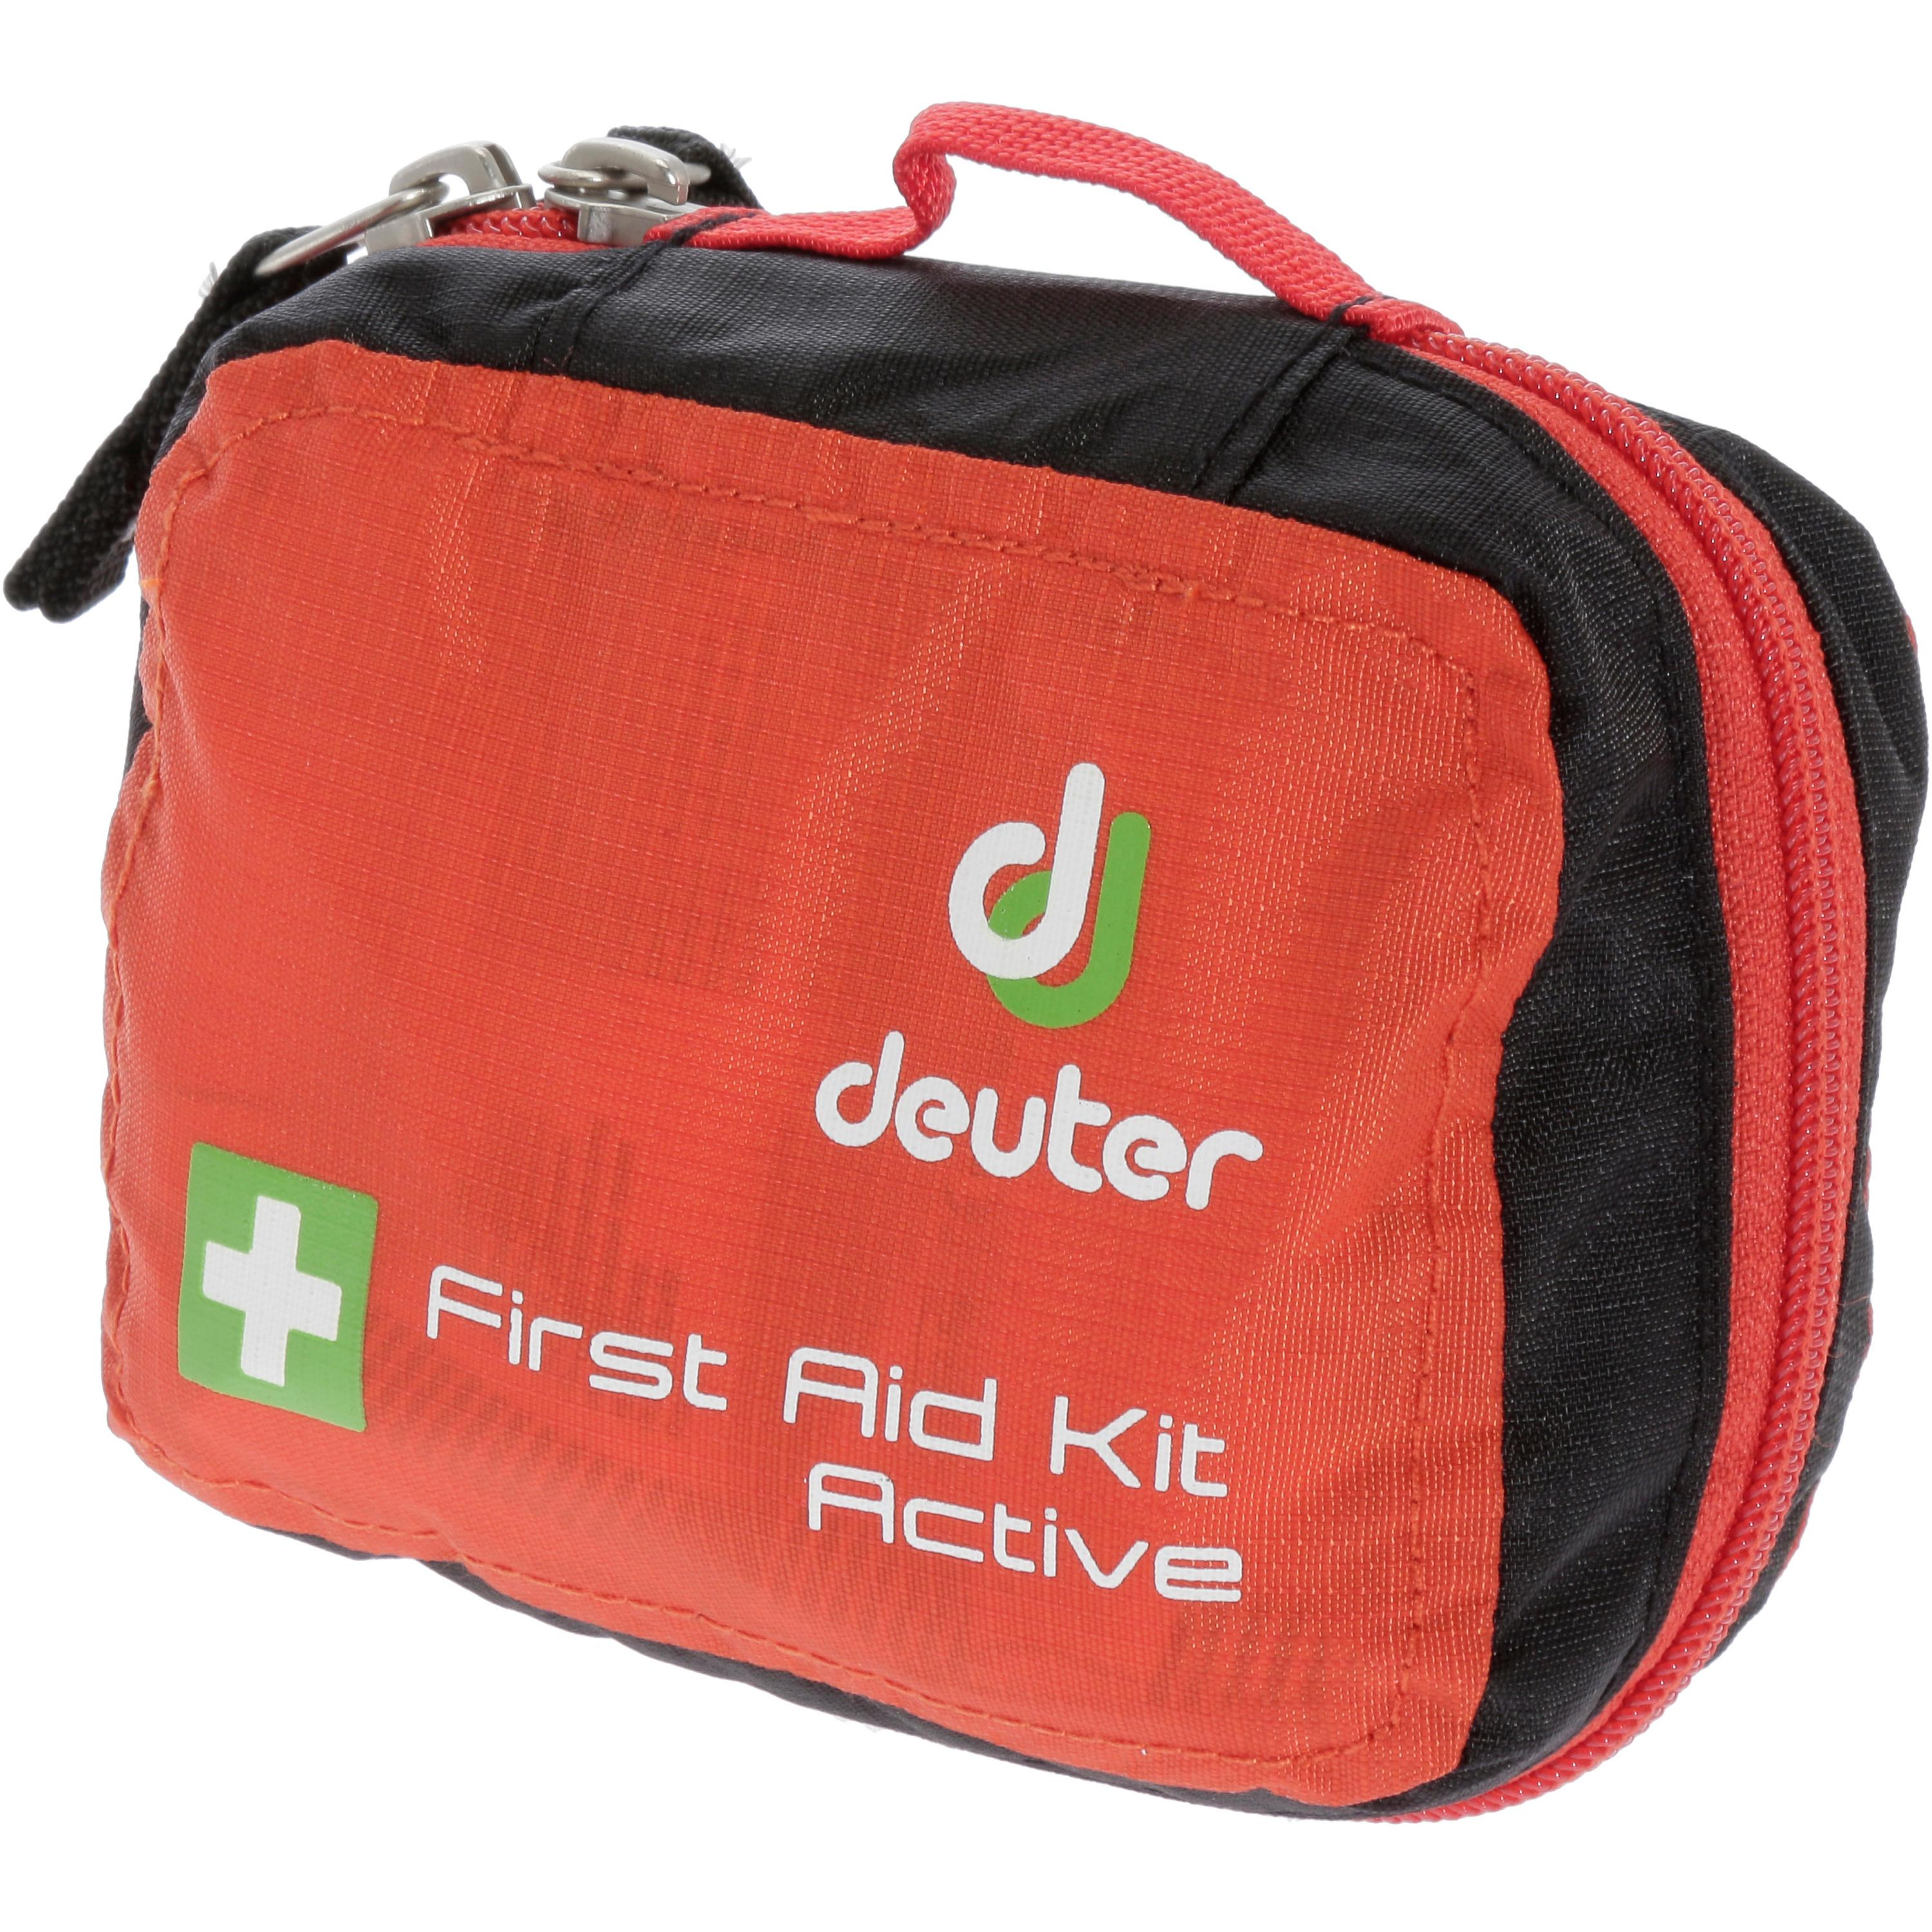 Image of Deuter First Aid Kit Active Erste Hilfe Set